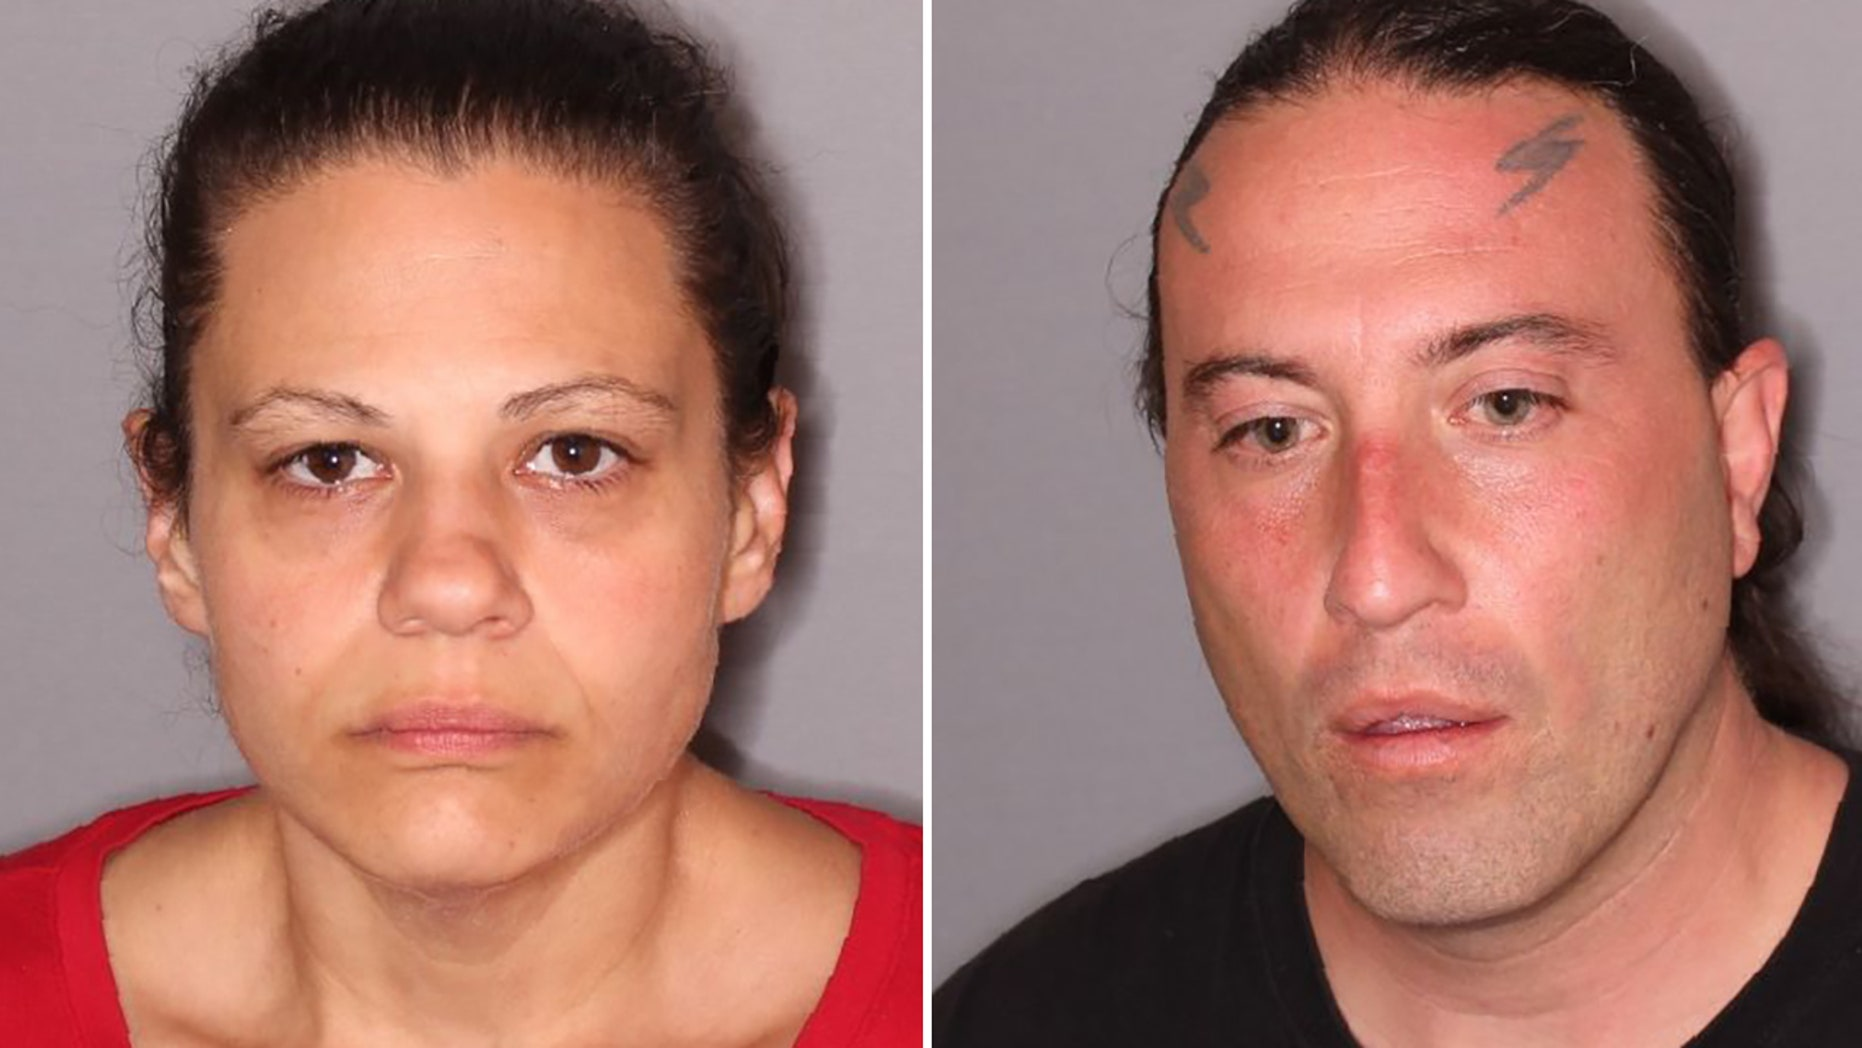 A 3-year-old boy remained on life support Wednesday after his mother, Alison Bovio, left, and stepfather, Donald Bovio, right, allegedly beat him with a belt so badly last week he was left brain dead.